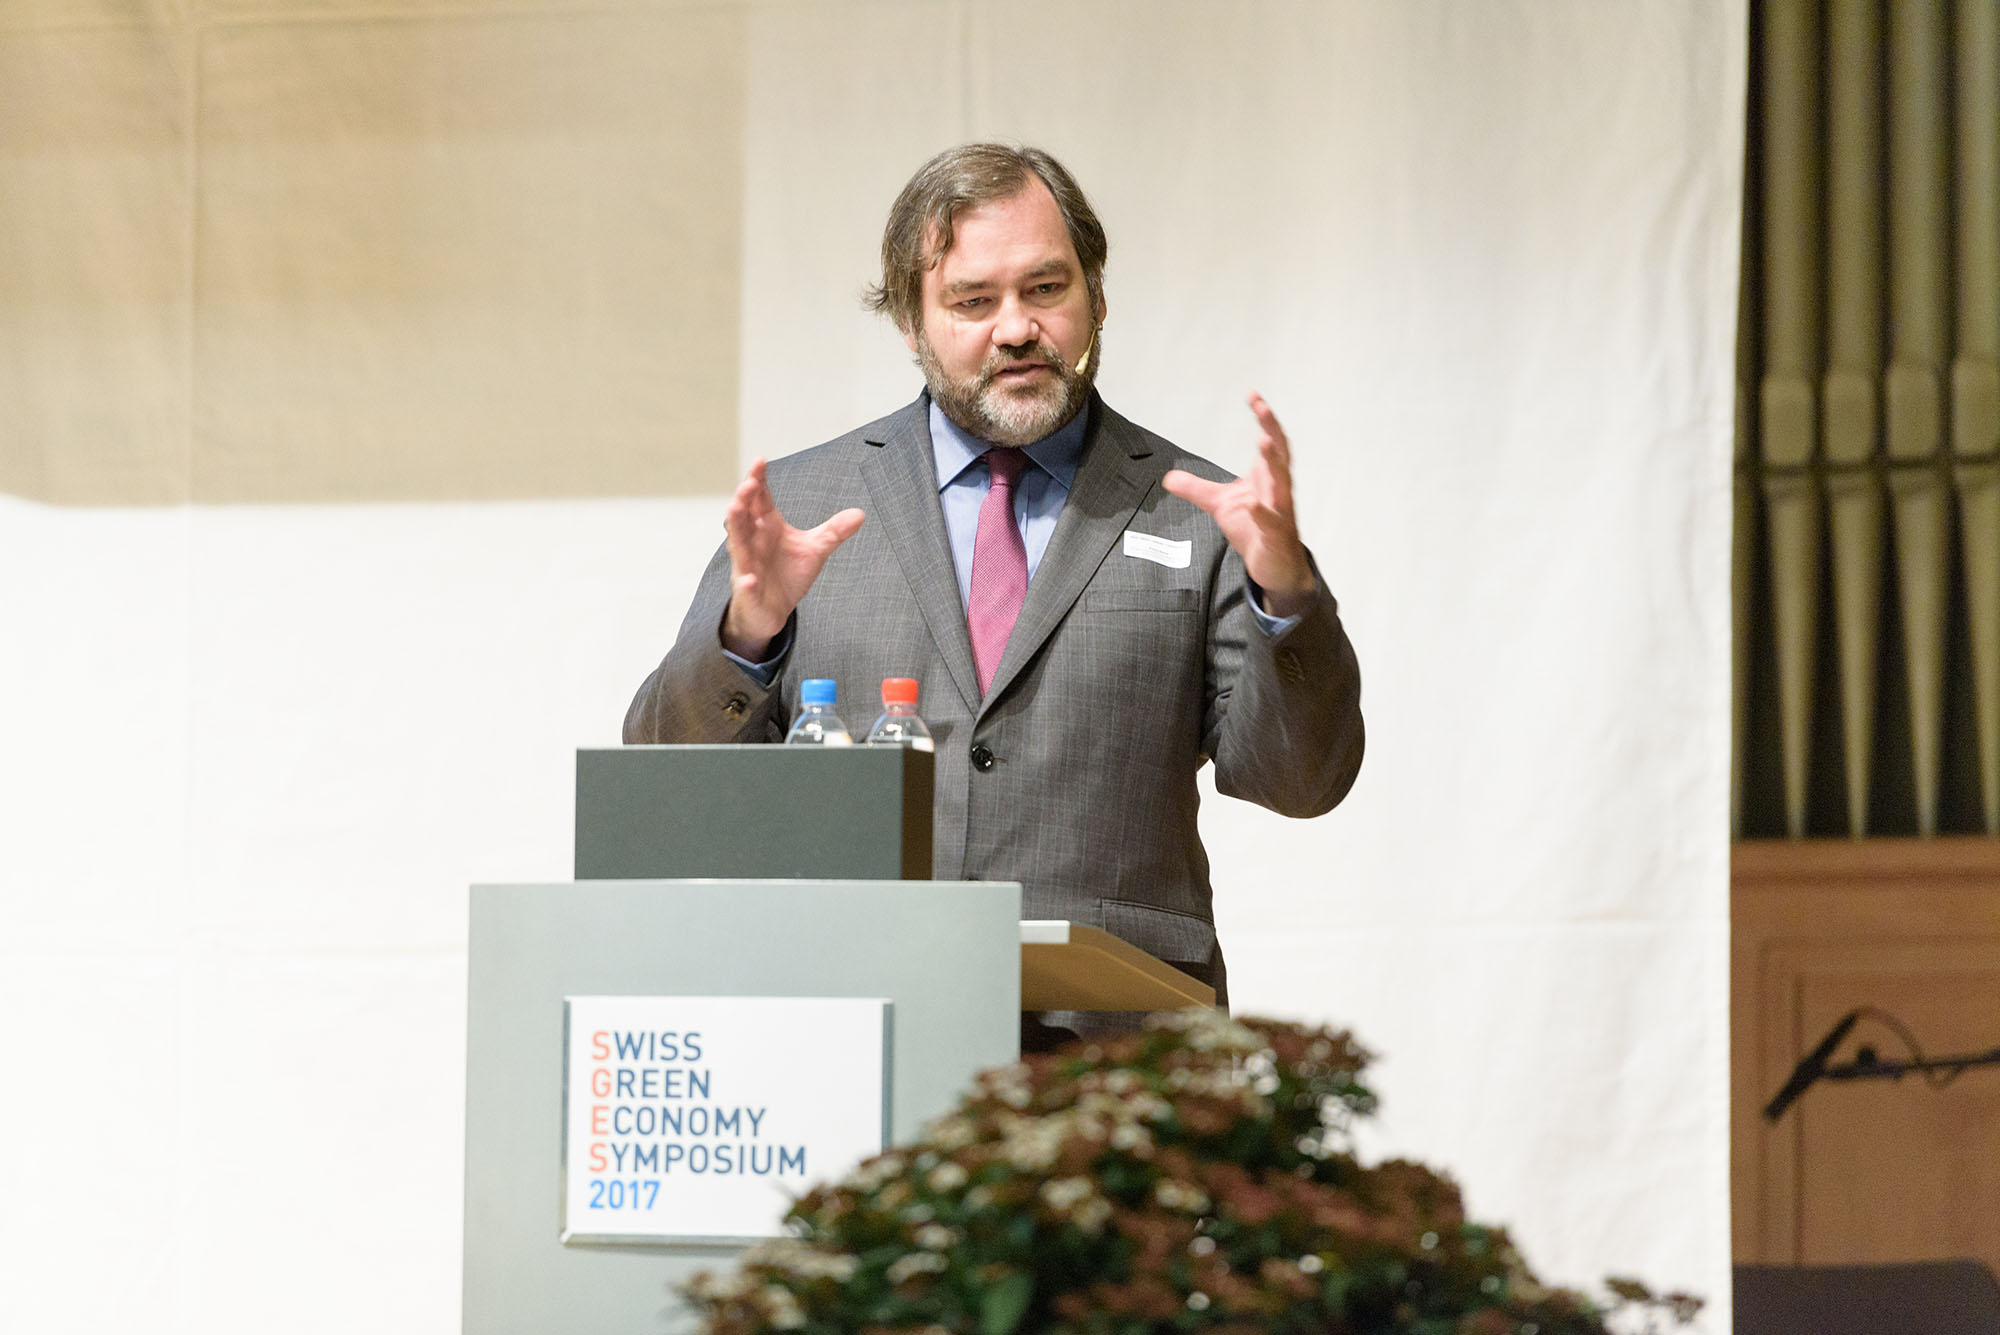 Dante Pesce, Member of the United Nations Working Group on Business and Human Rights, Director VINCULAR Center for Social Responsibility and Sustainable Development at Catholic University of Valparaiso, Chile